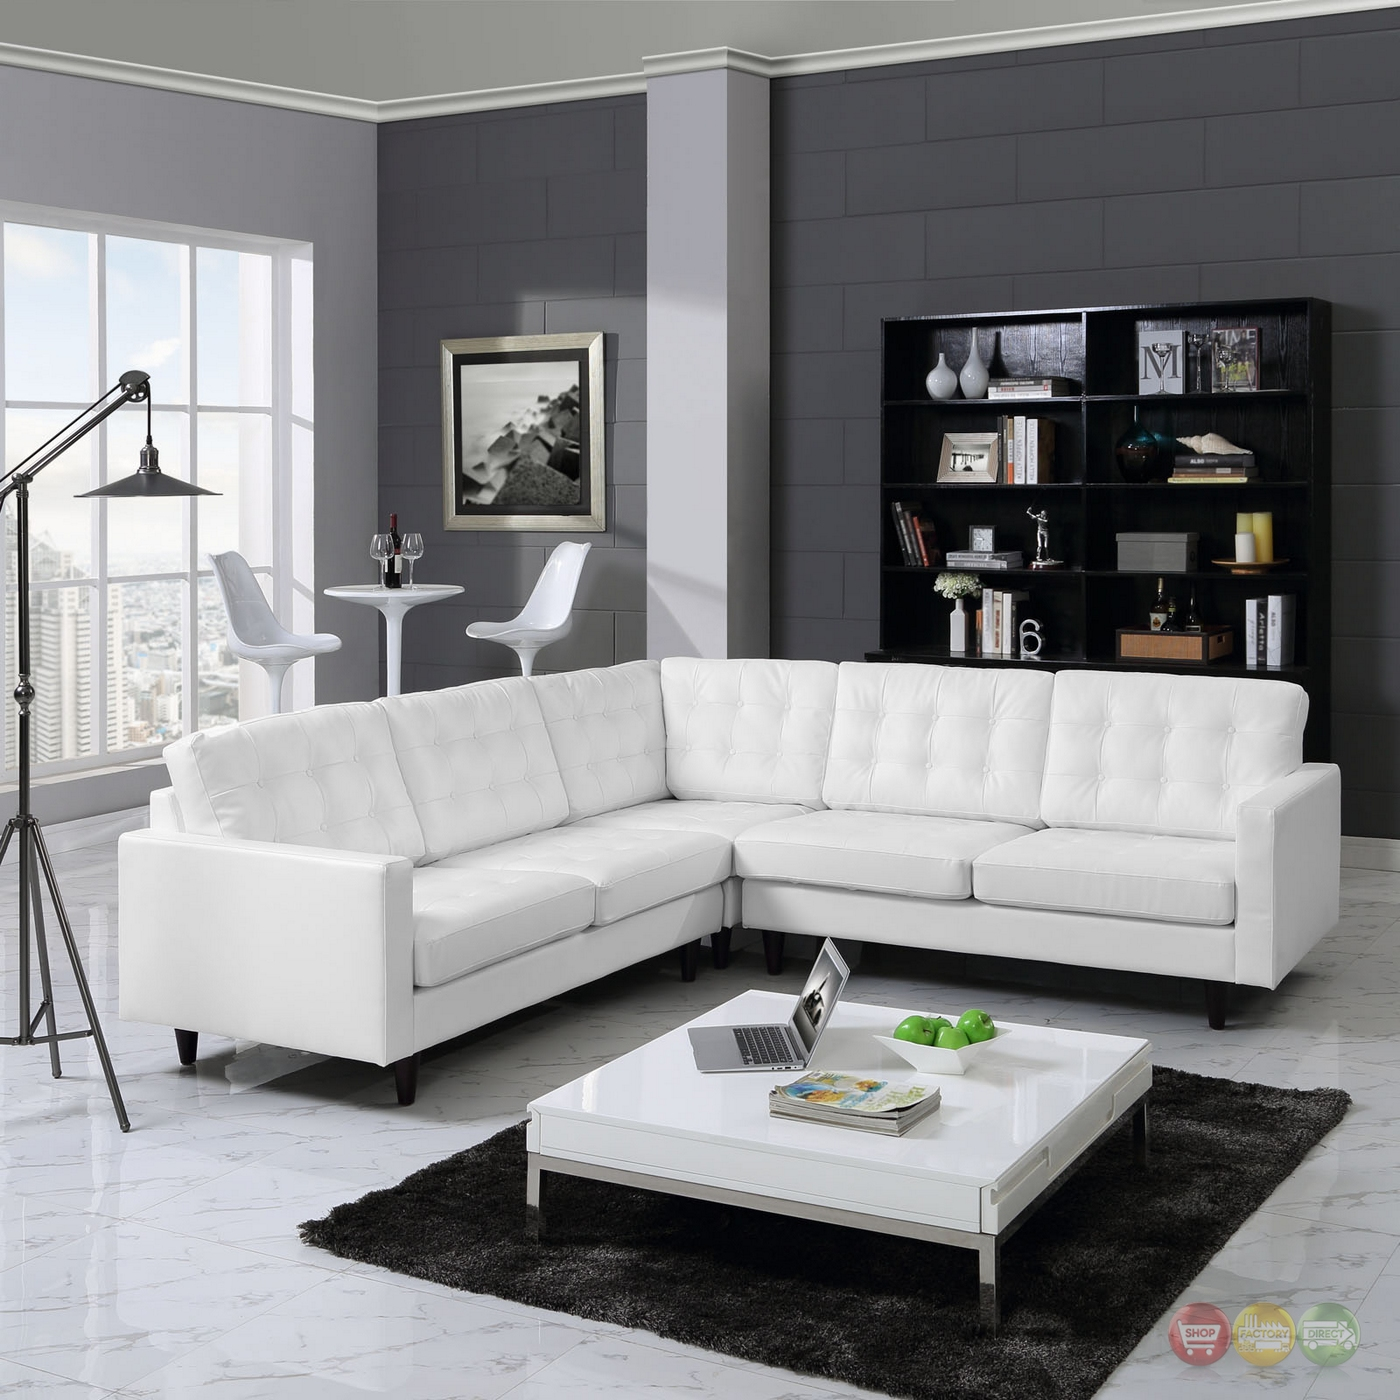 Modern White Leather Sectional Sofa: Button Tufted Sectional Sofa